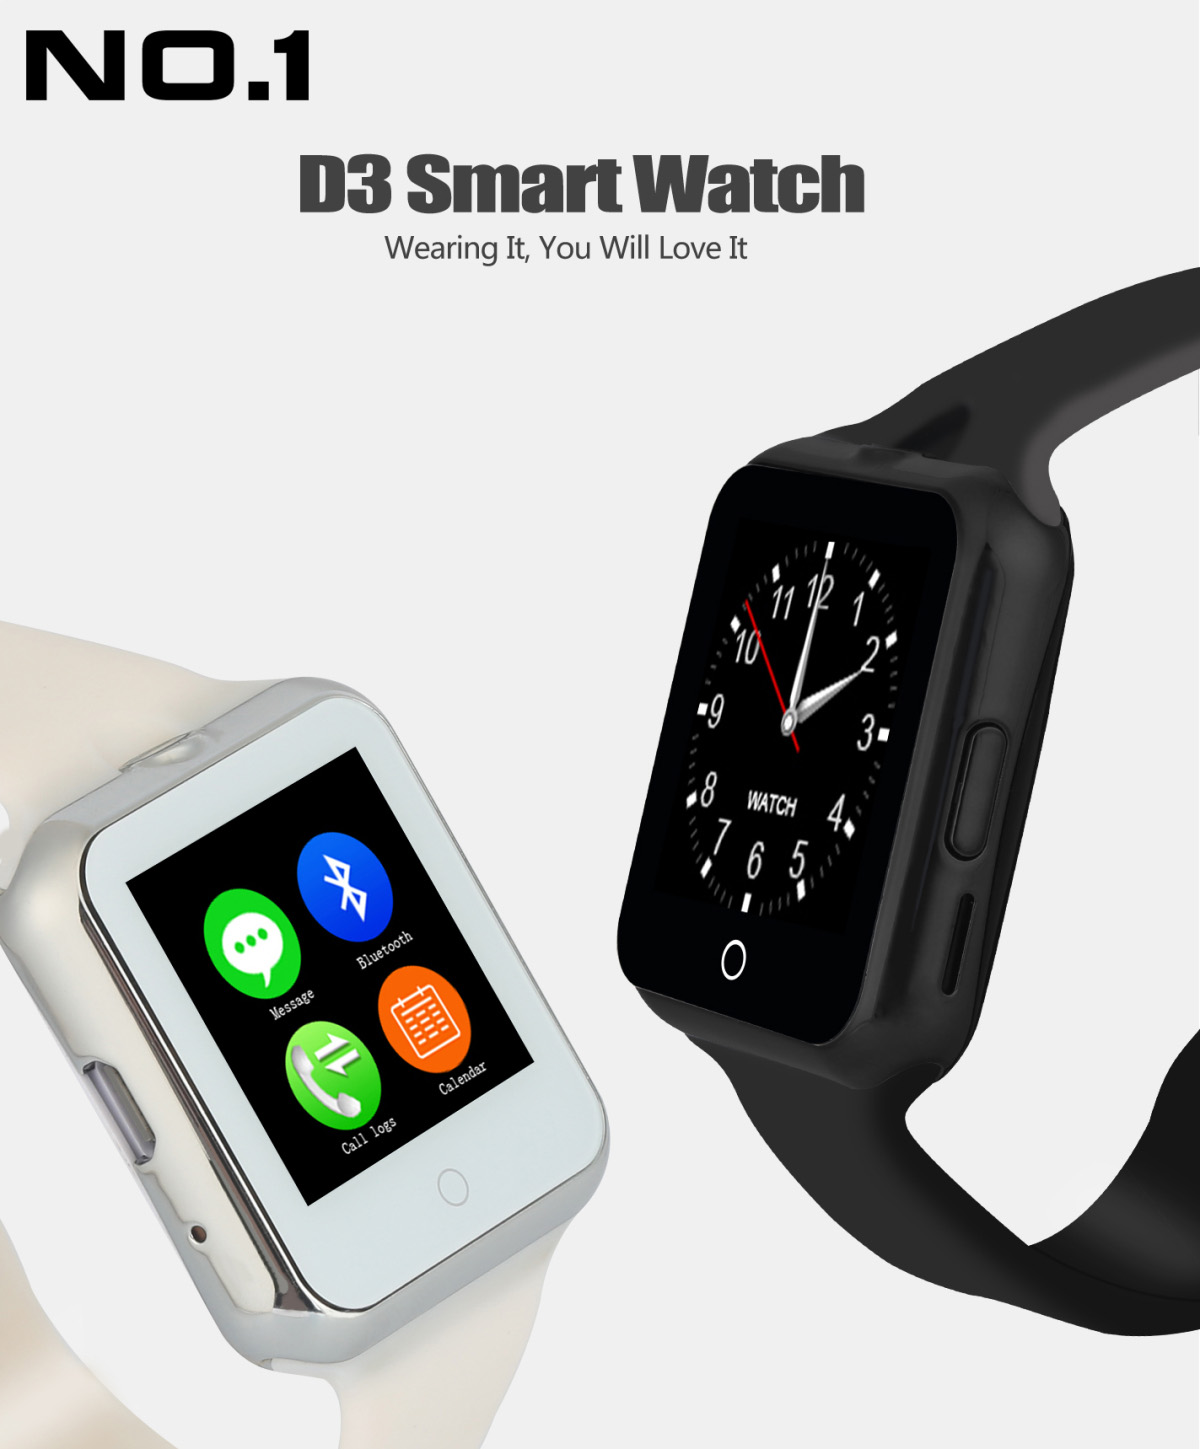 NO.1 D3 Smartwatch